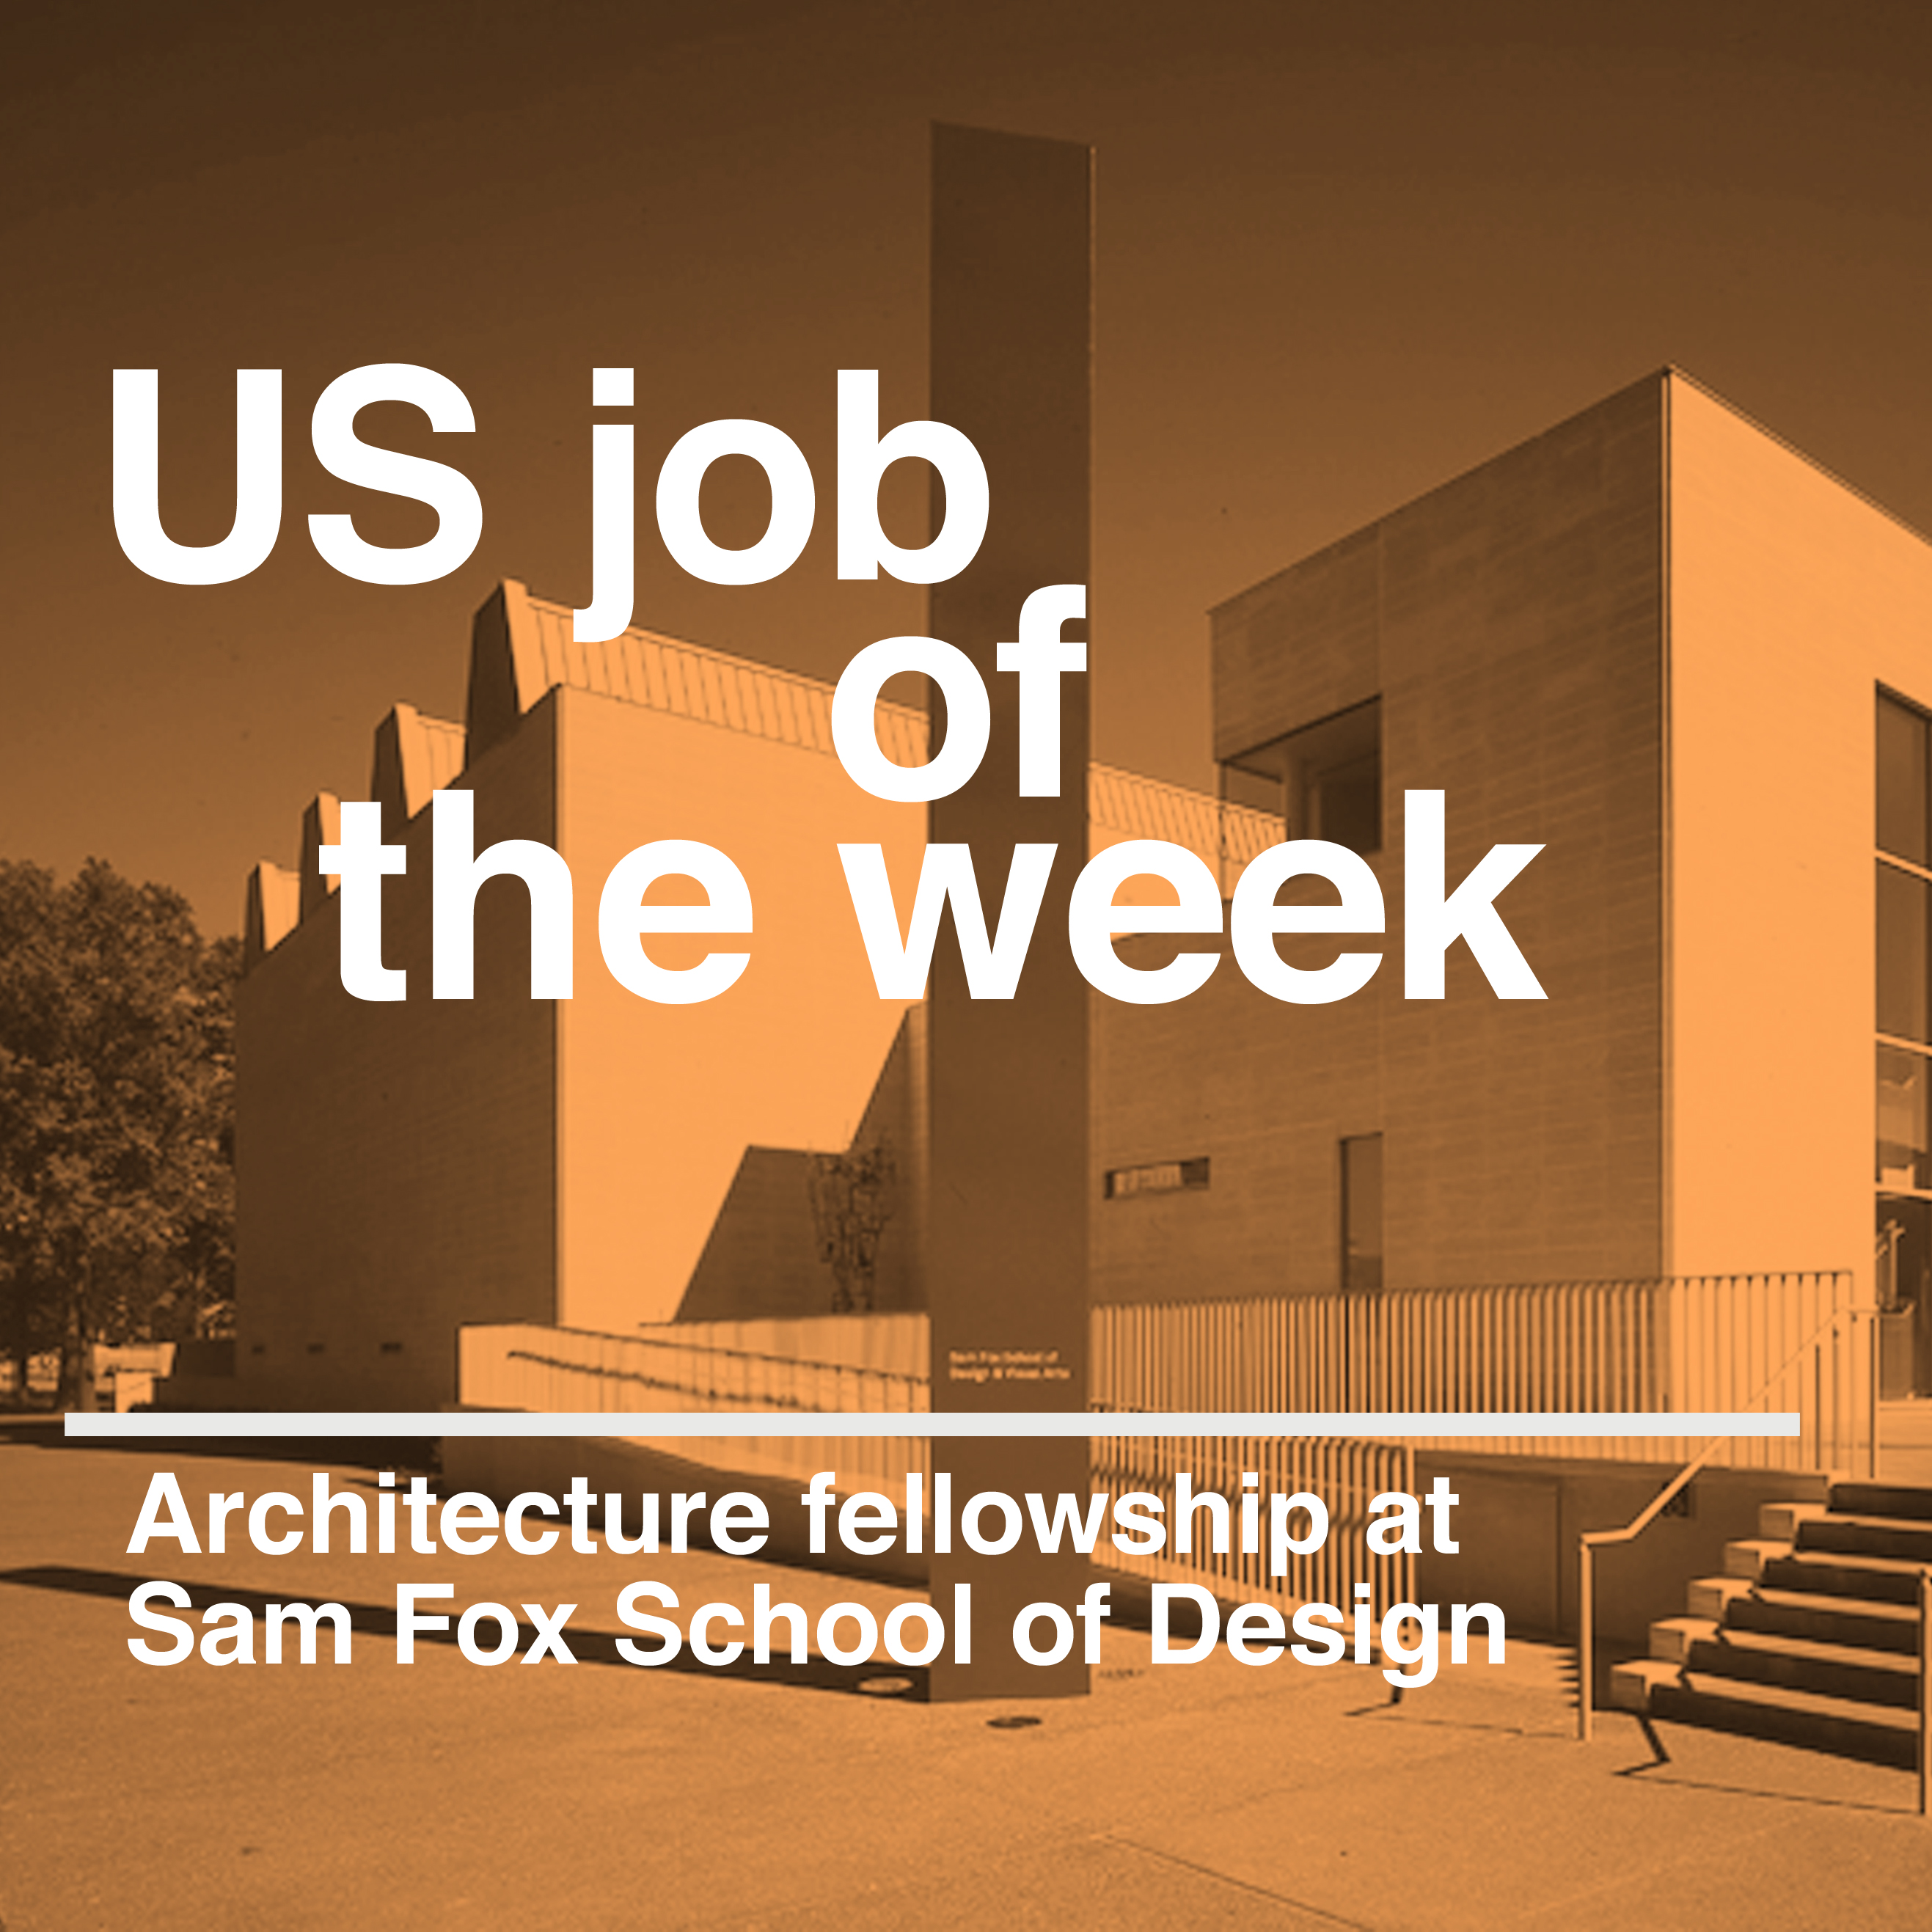 Poster design jobs - Us Job Of The Week Architecture Fellowship At The Sam Fox School Of Design